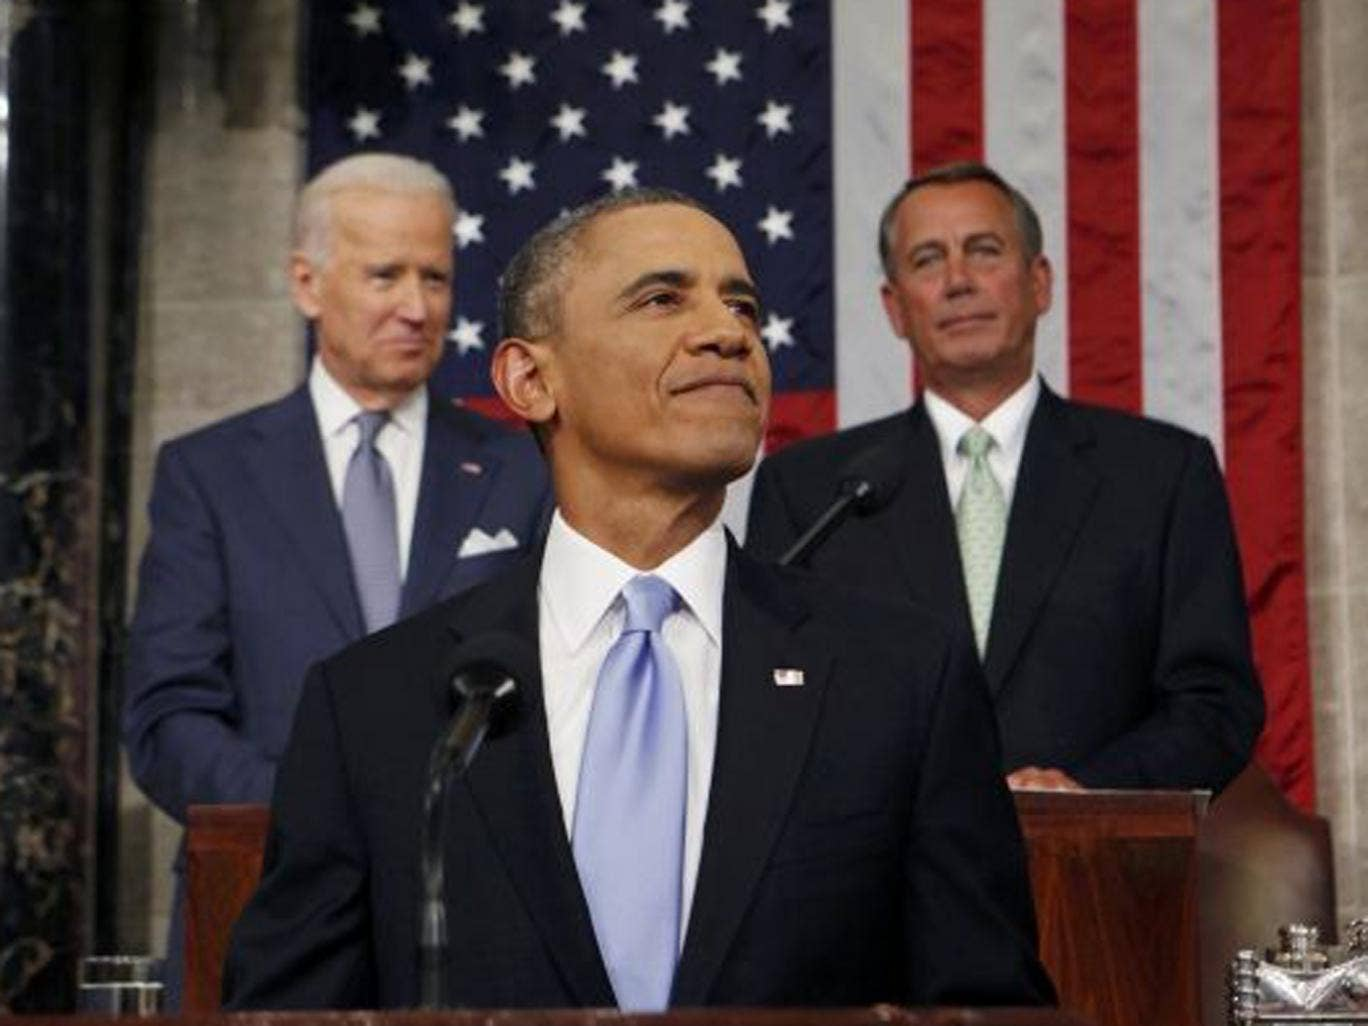 President Obama urged members of Congress to make 2014 a 'year of action' in his State of the Union address